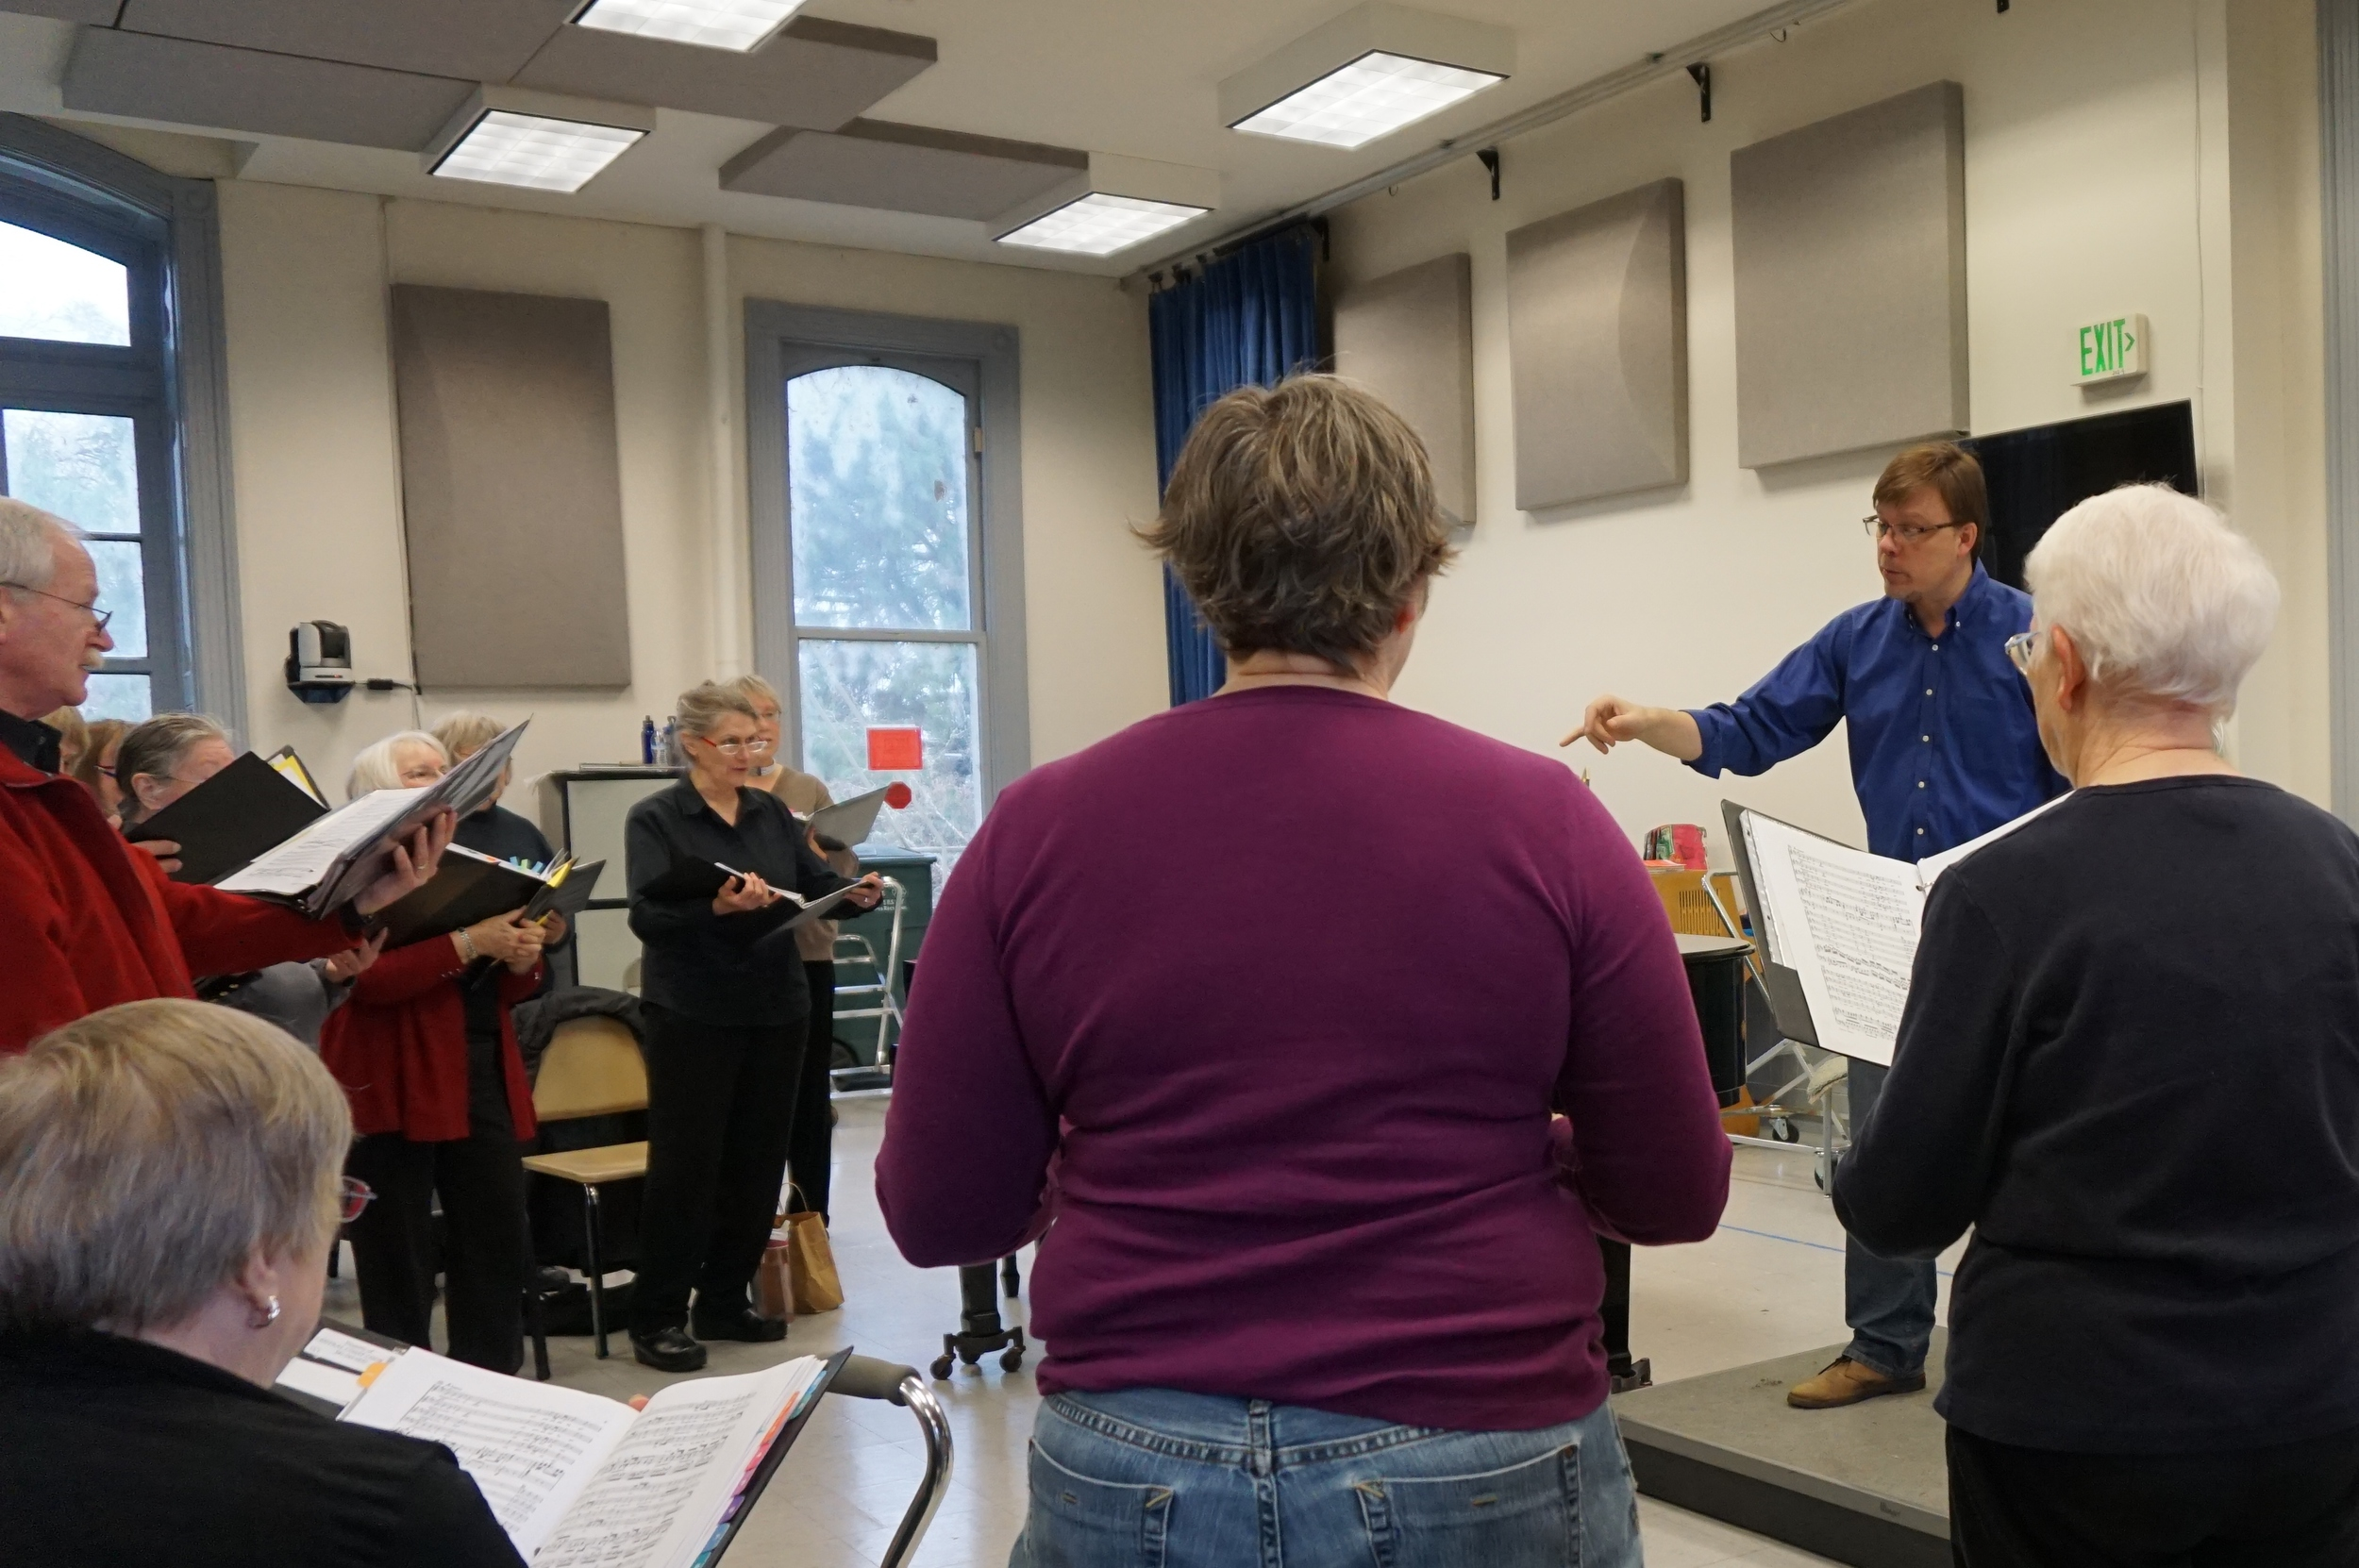 Dr. Steven Zielke conducts rehearsal with the central coast chorale in preparation for holiday spectacular concert.